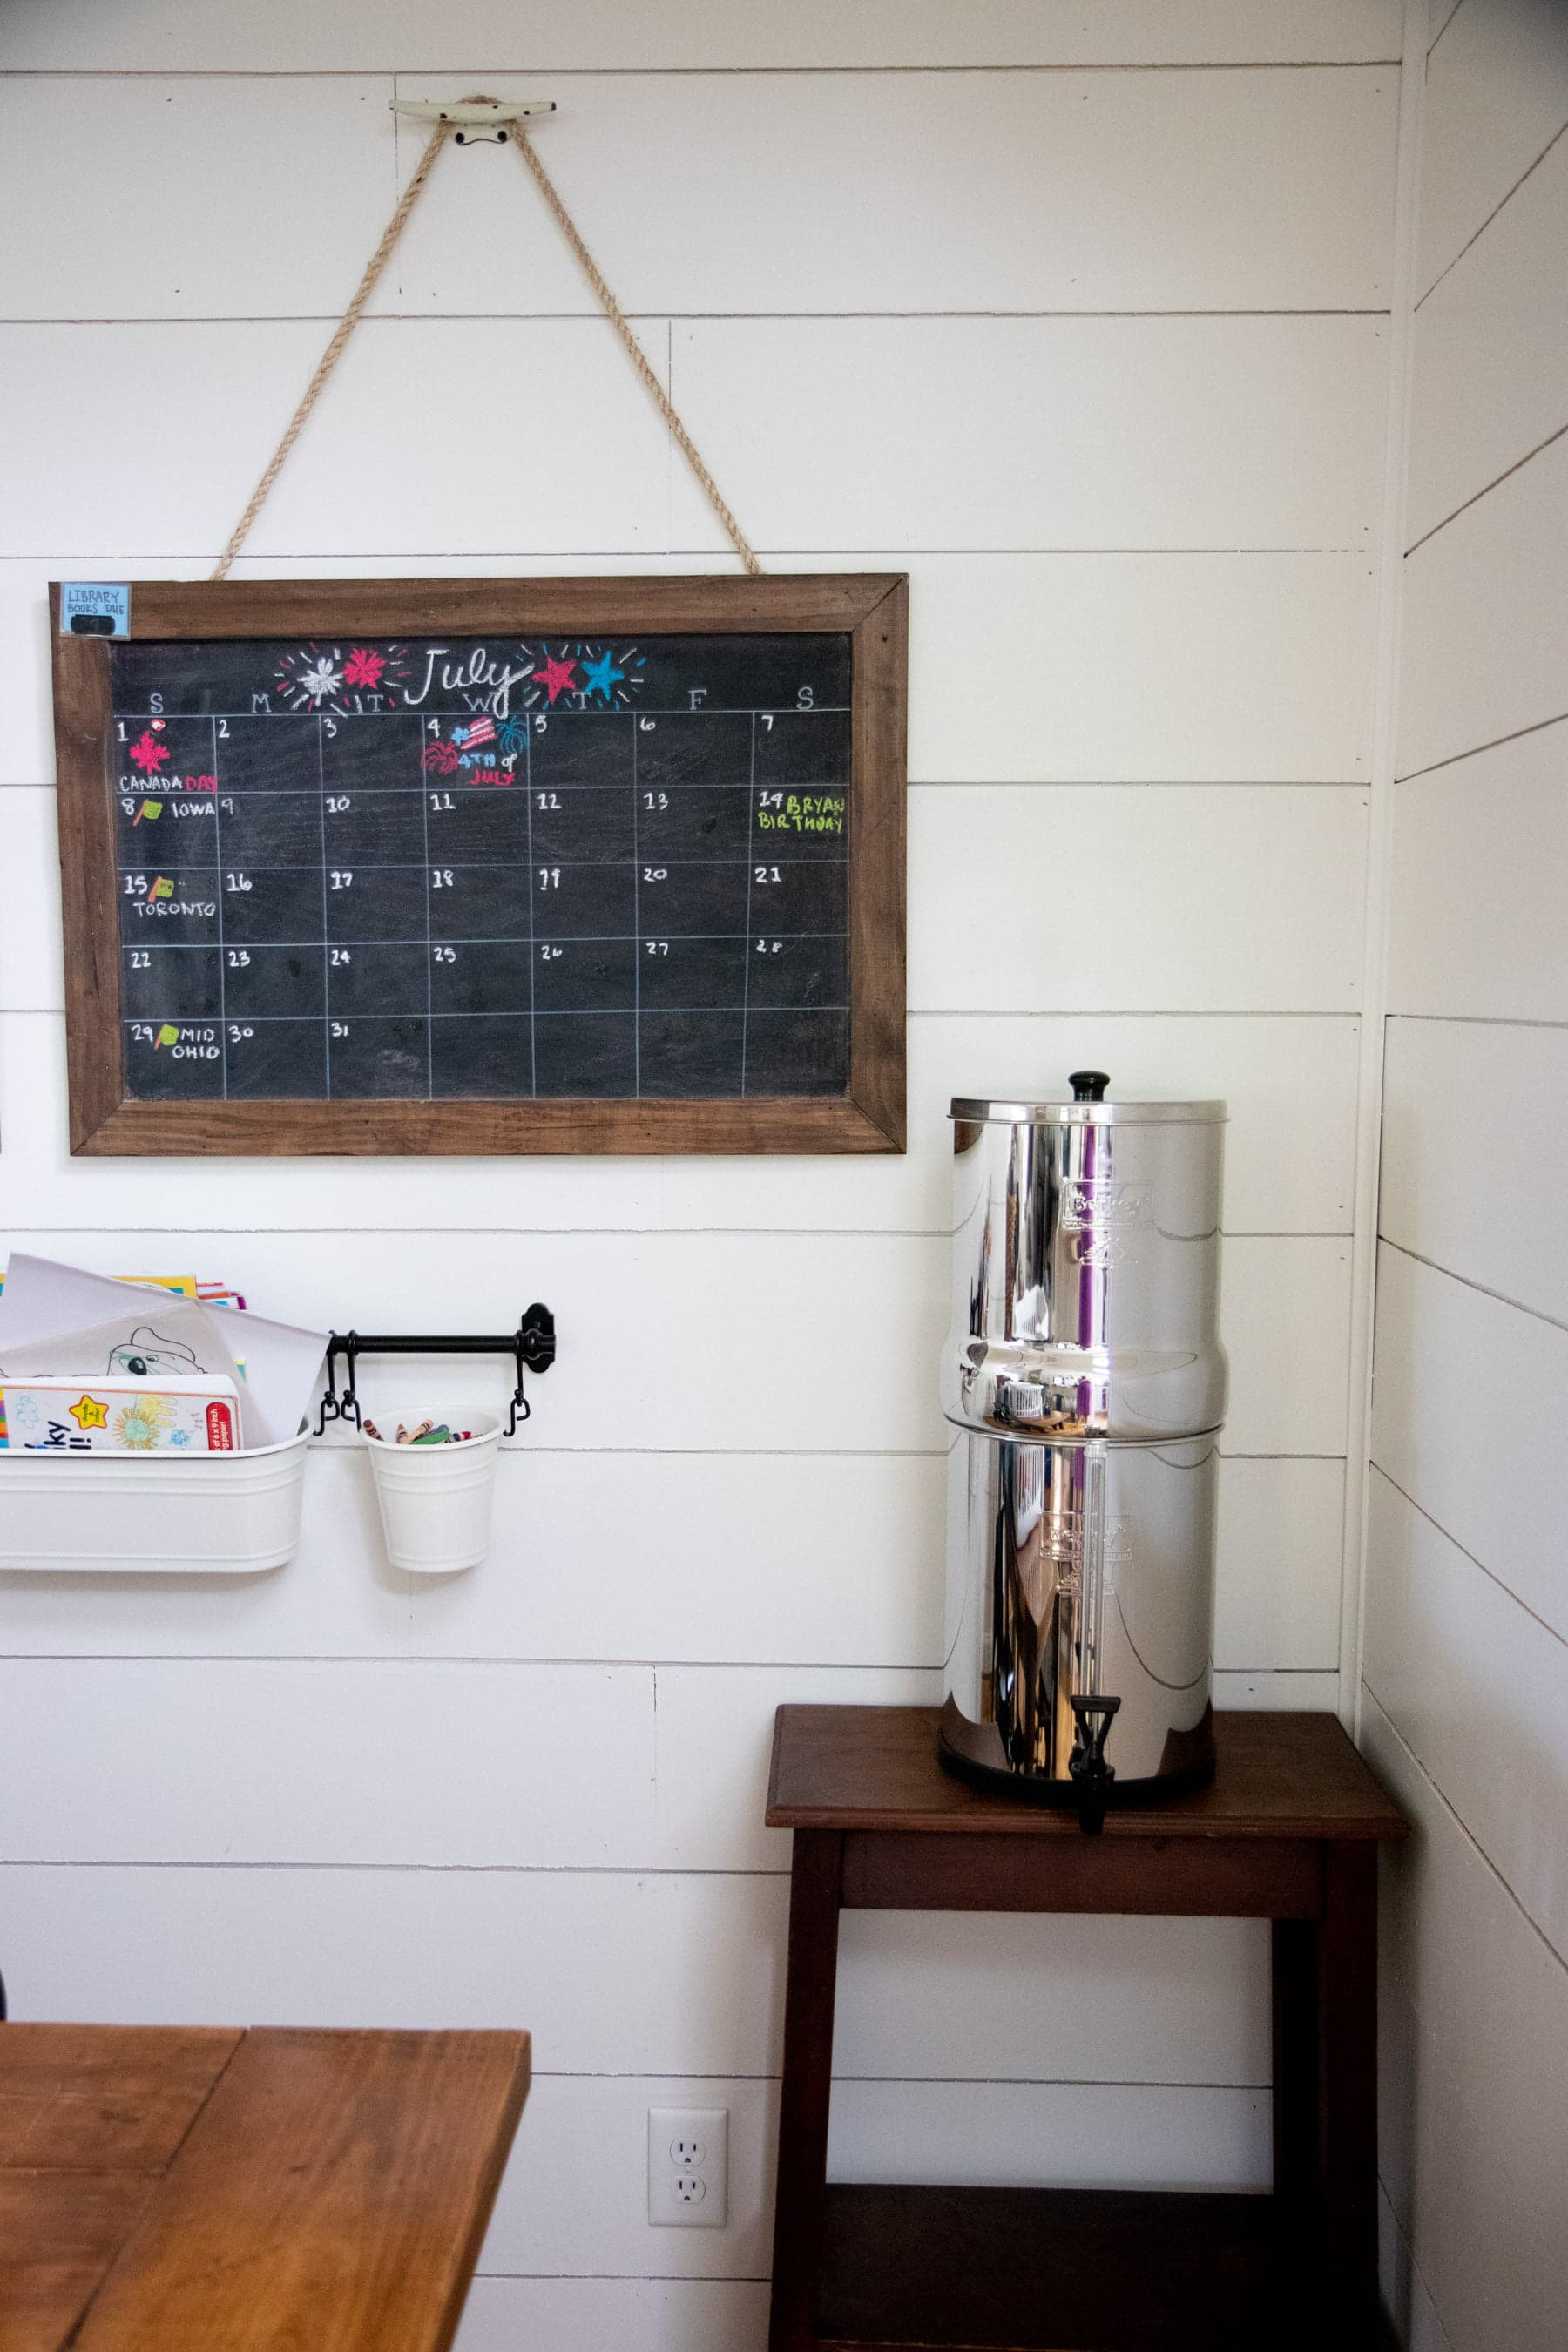 Berkey Water Filter system sitting in a corner near a July chalkboard calendar